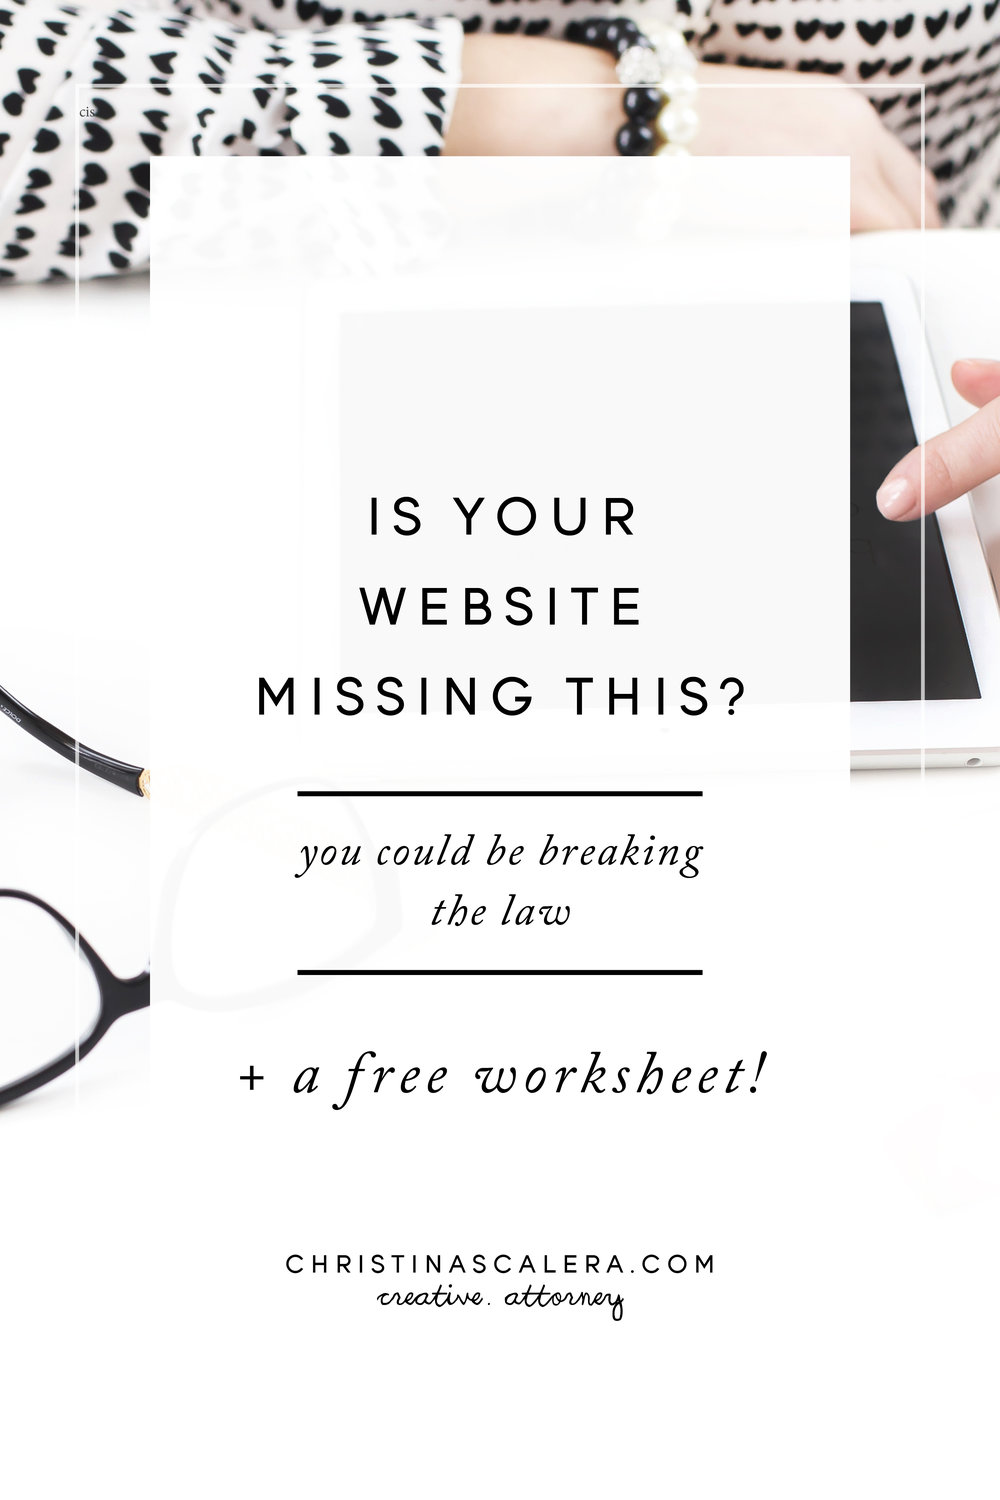 Is your website missing this? You could be breaking the law!!